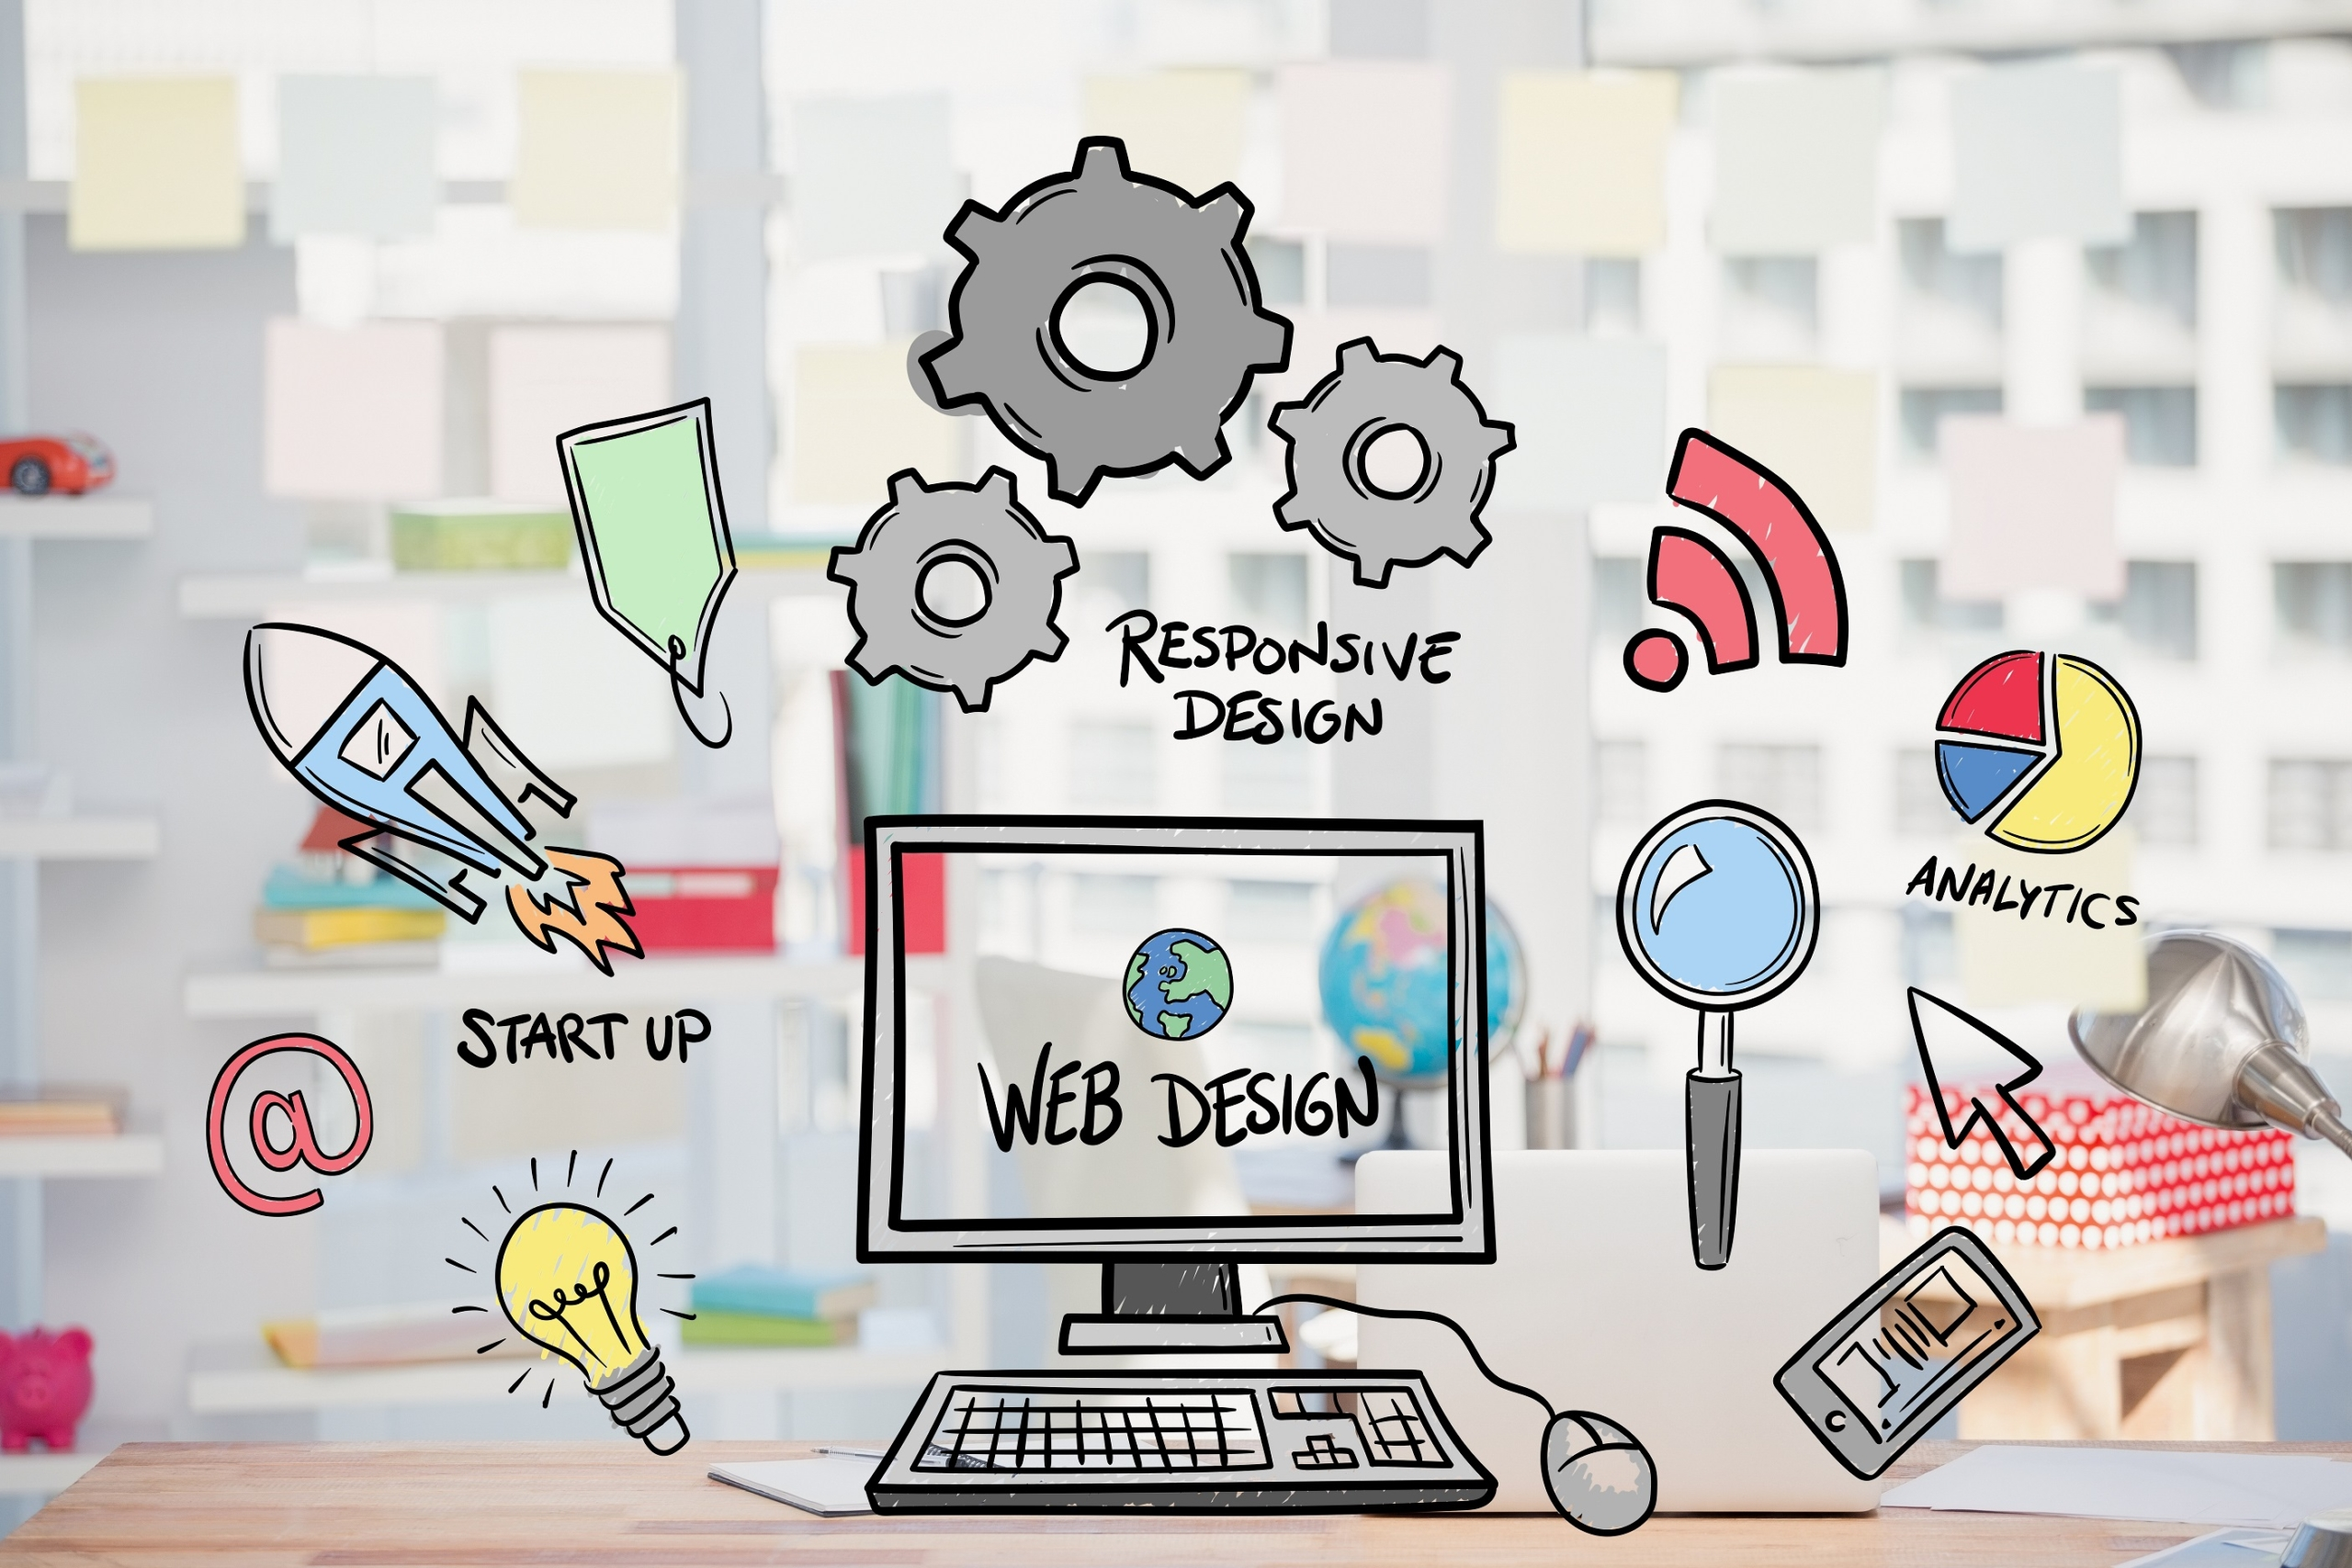 web-design-concept-with-drawings